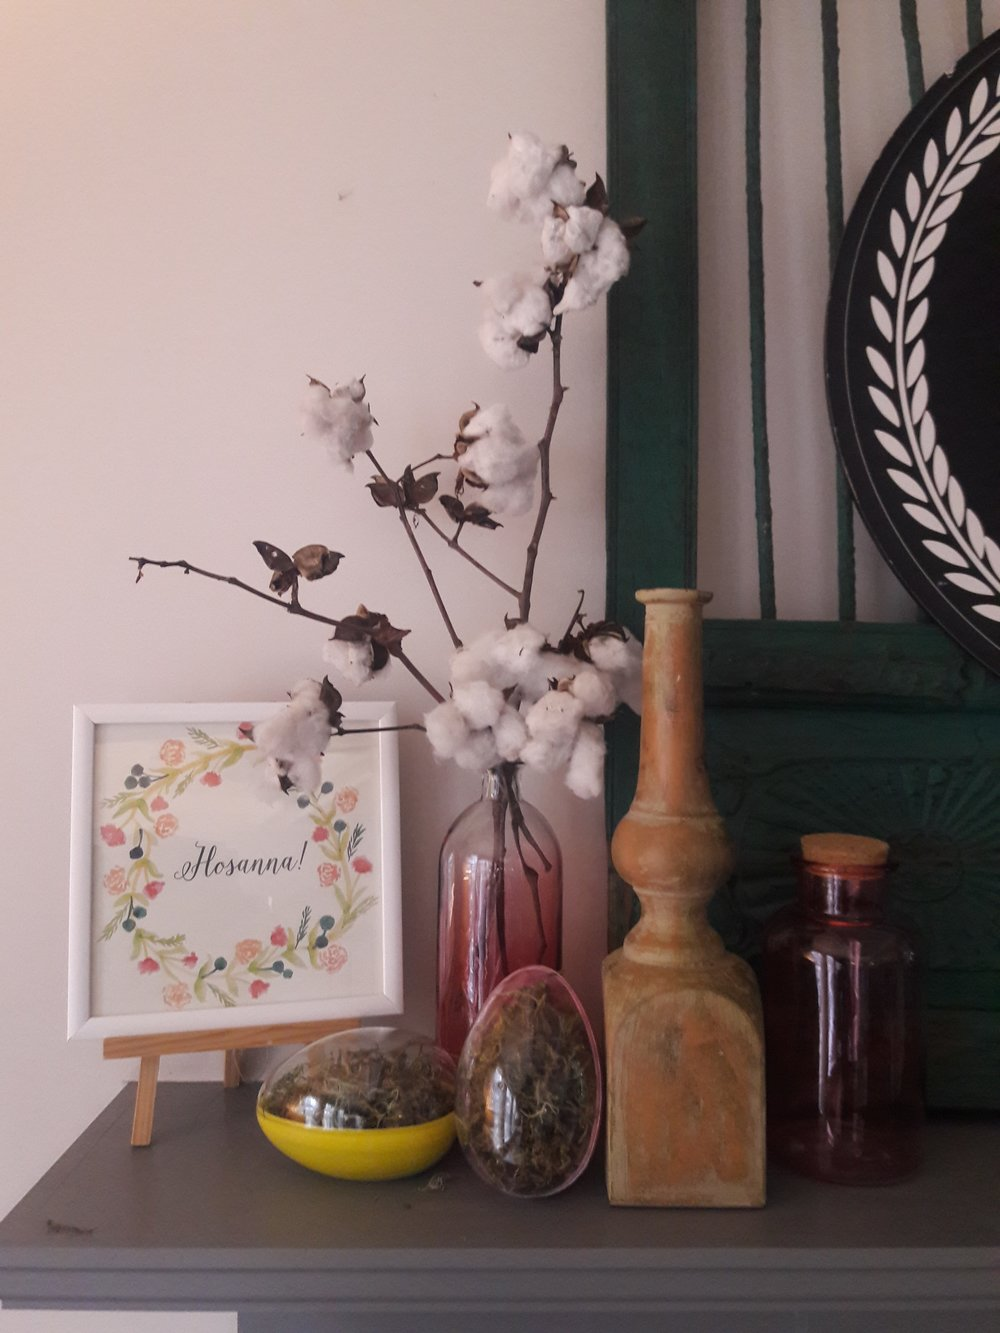 """Hosana"" Printable I found  here , plastic colored eggs from the $1 isle at Michaels, a bag of moss from Dollar store,  pink glass bottles from Target dollar isle ($3 each). The cotton stems I already had, along with the wood candle stick."